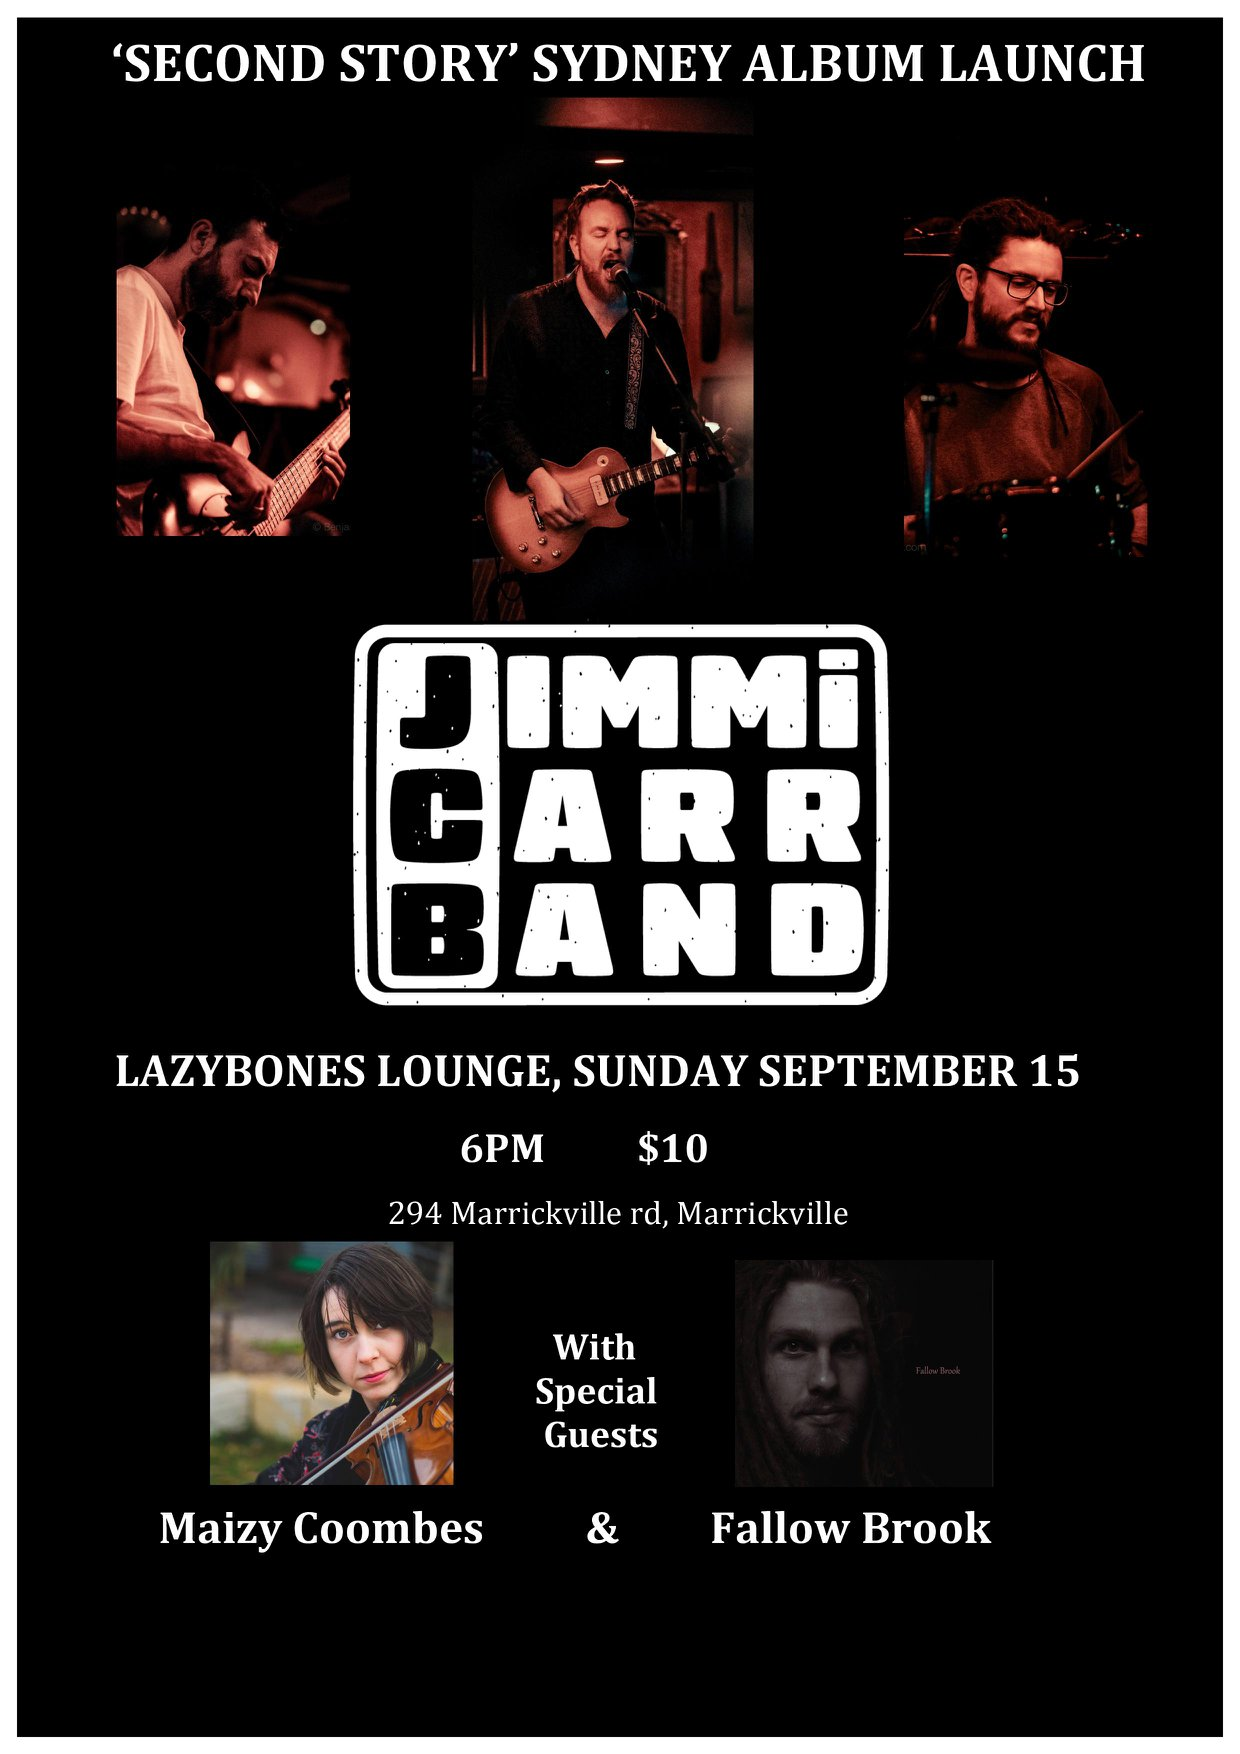 Jimmi Carr Band 08 Poster